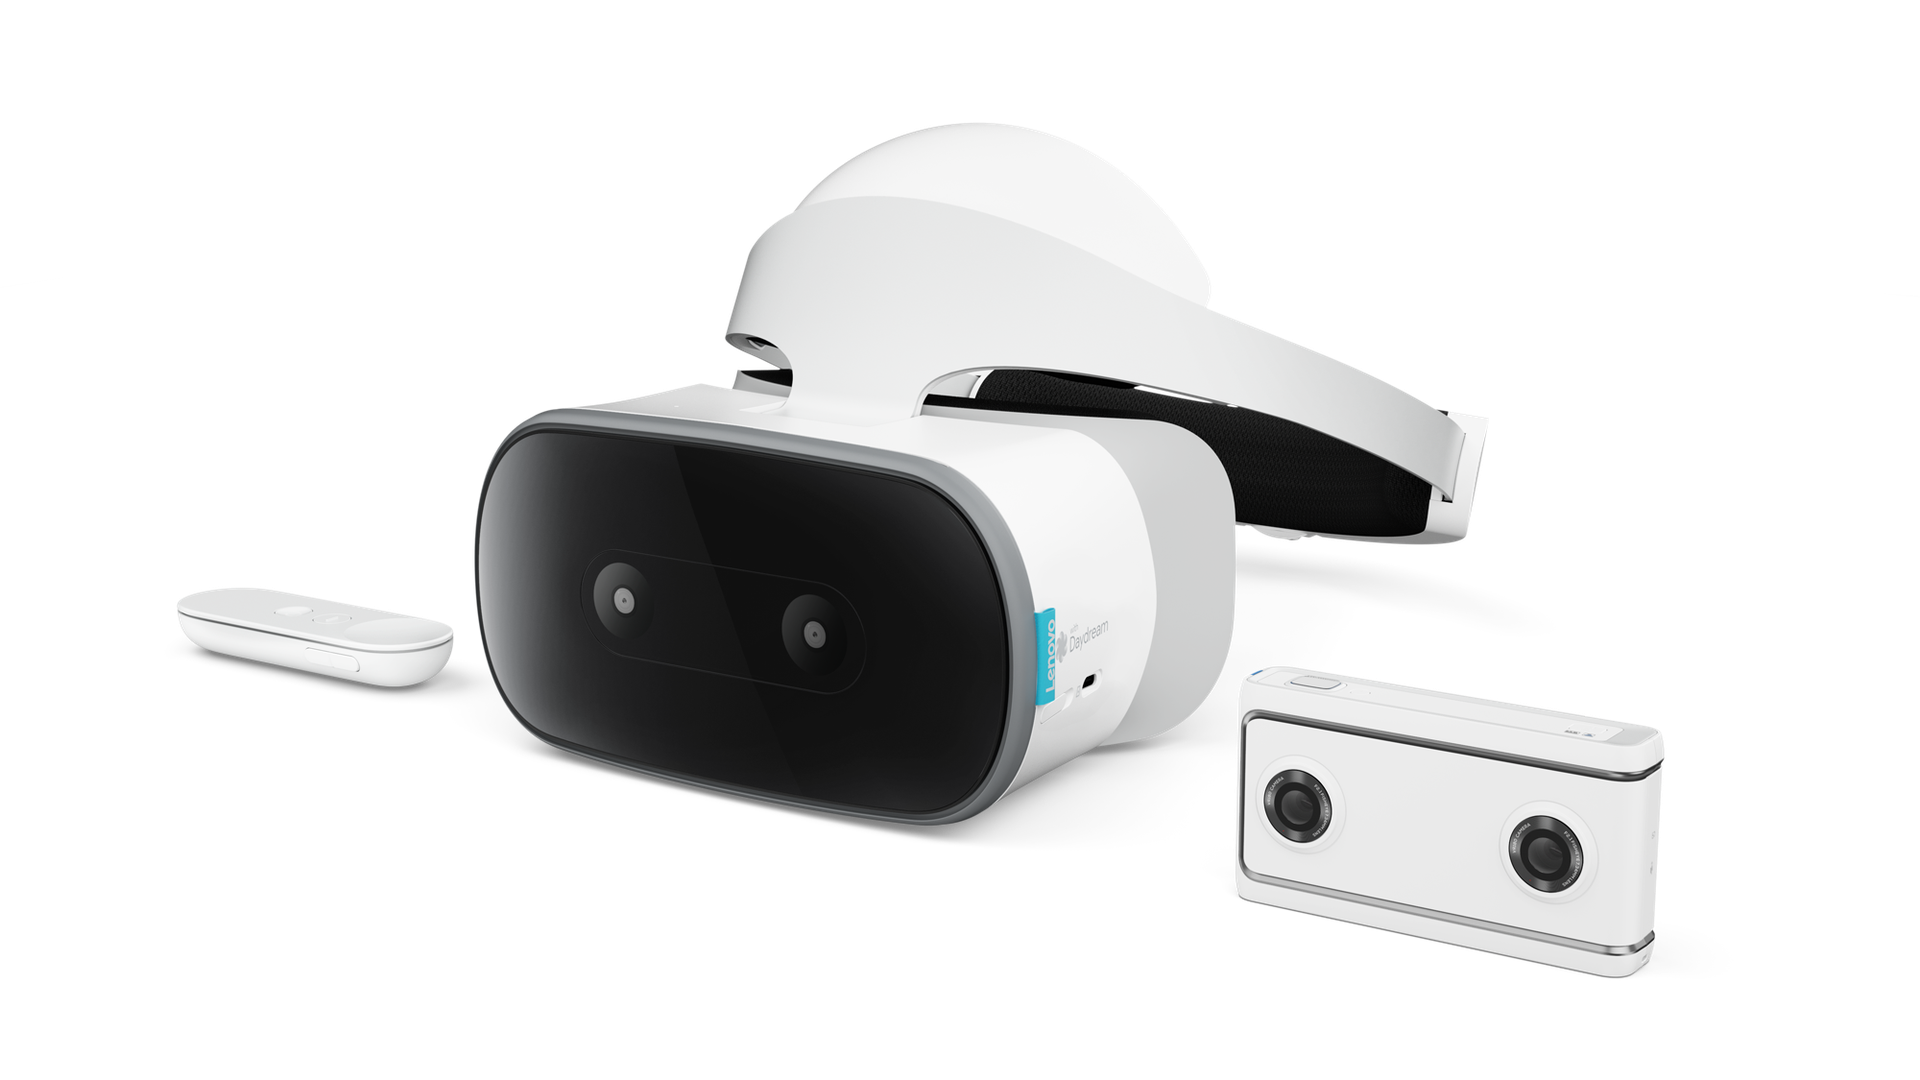 Lenovo's new standalone VR headset and camera, developed with Google